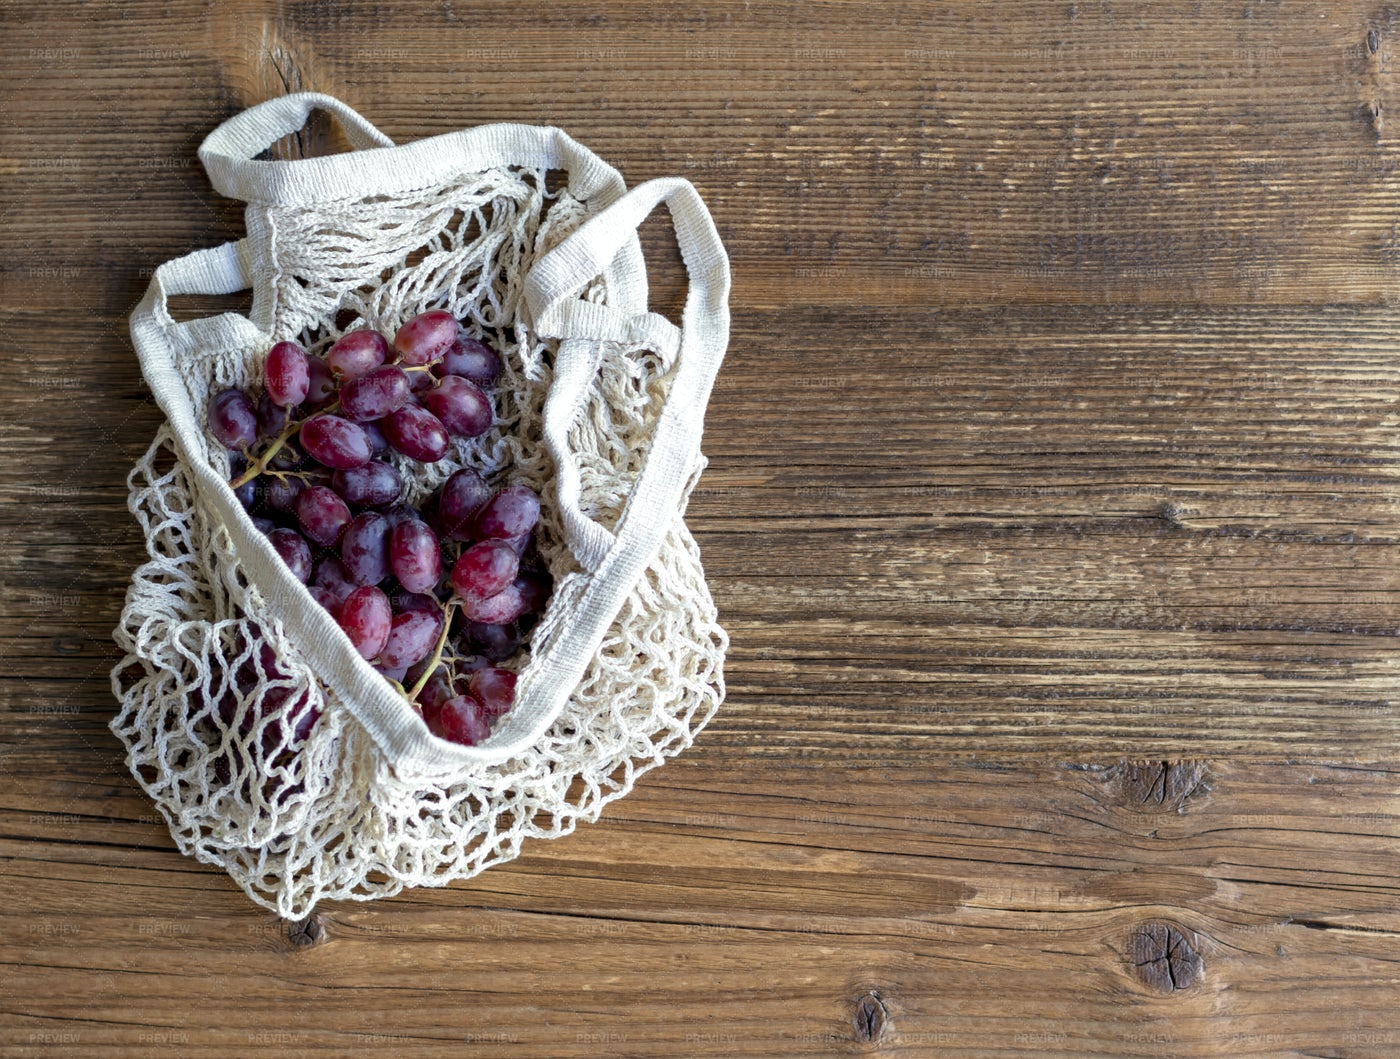 Red Grapes In A String Bag: Stock Photos